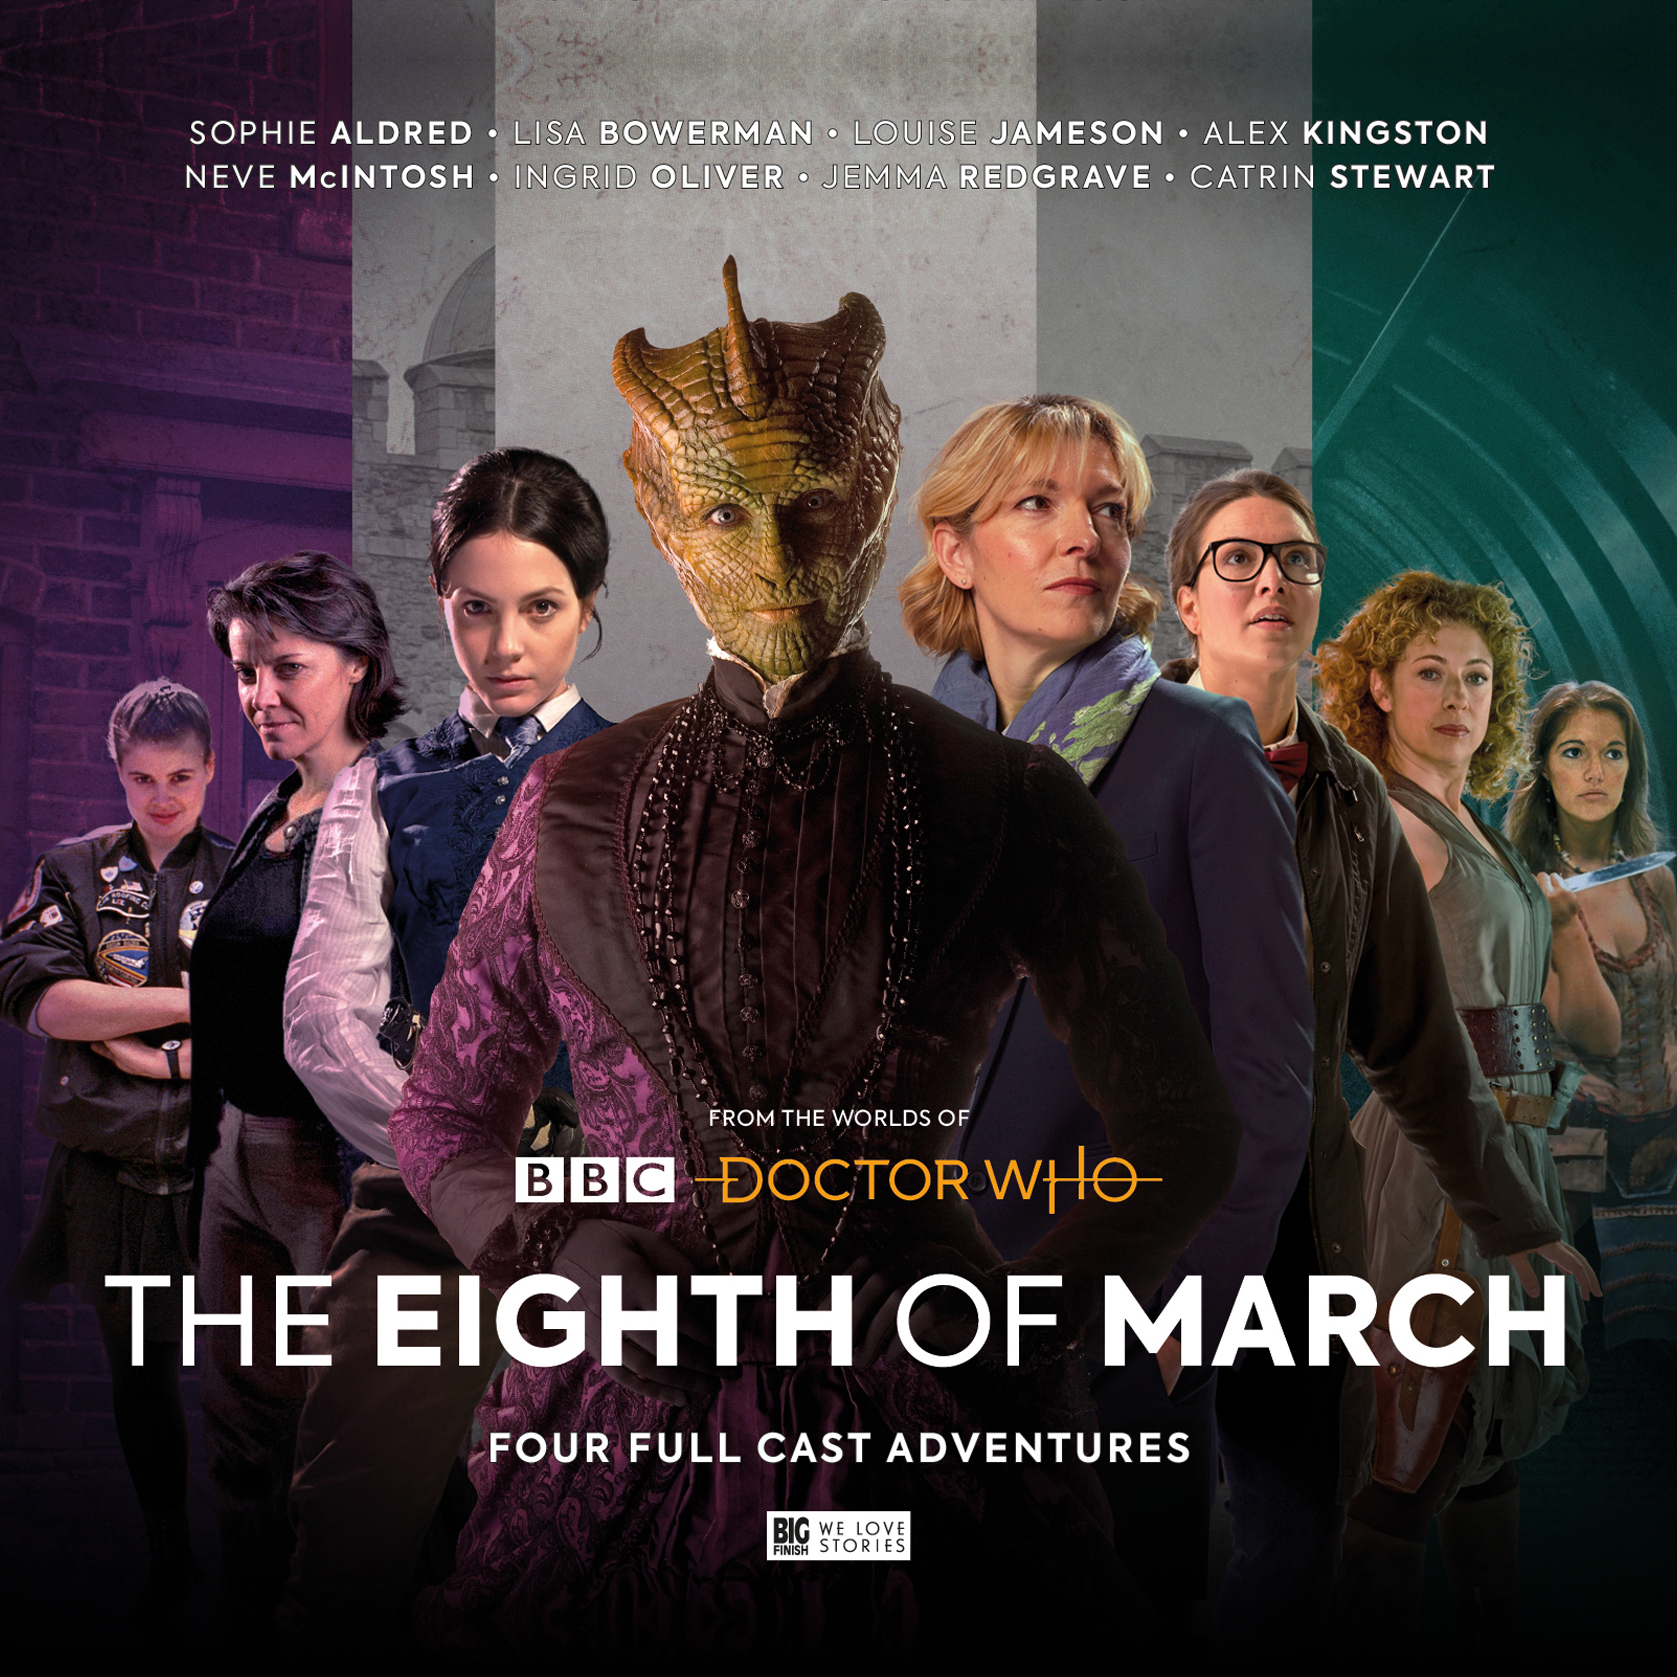 The 8th of March (Credit: Big Finish)